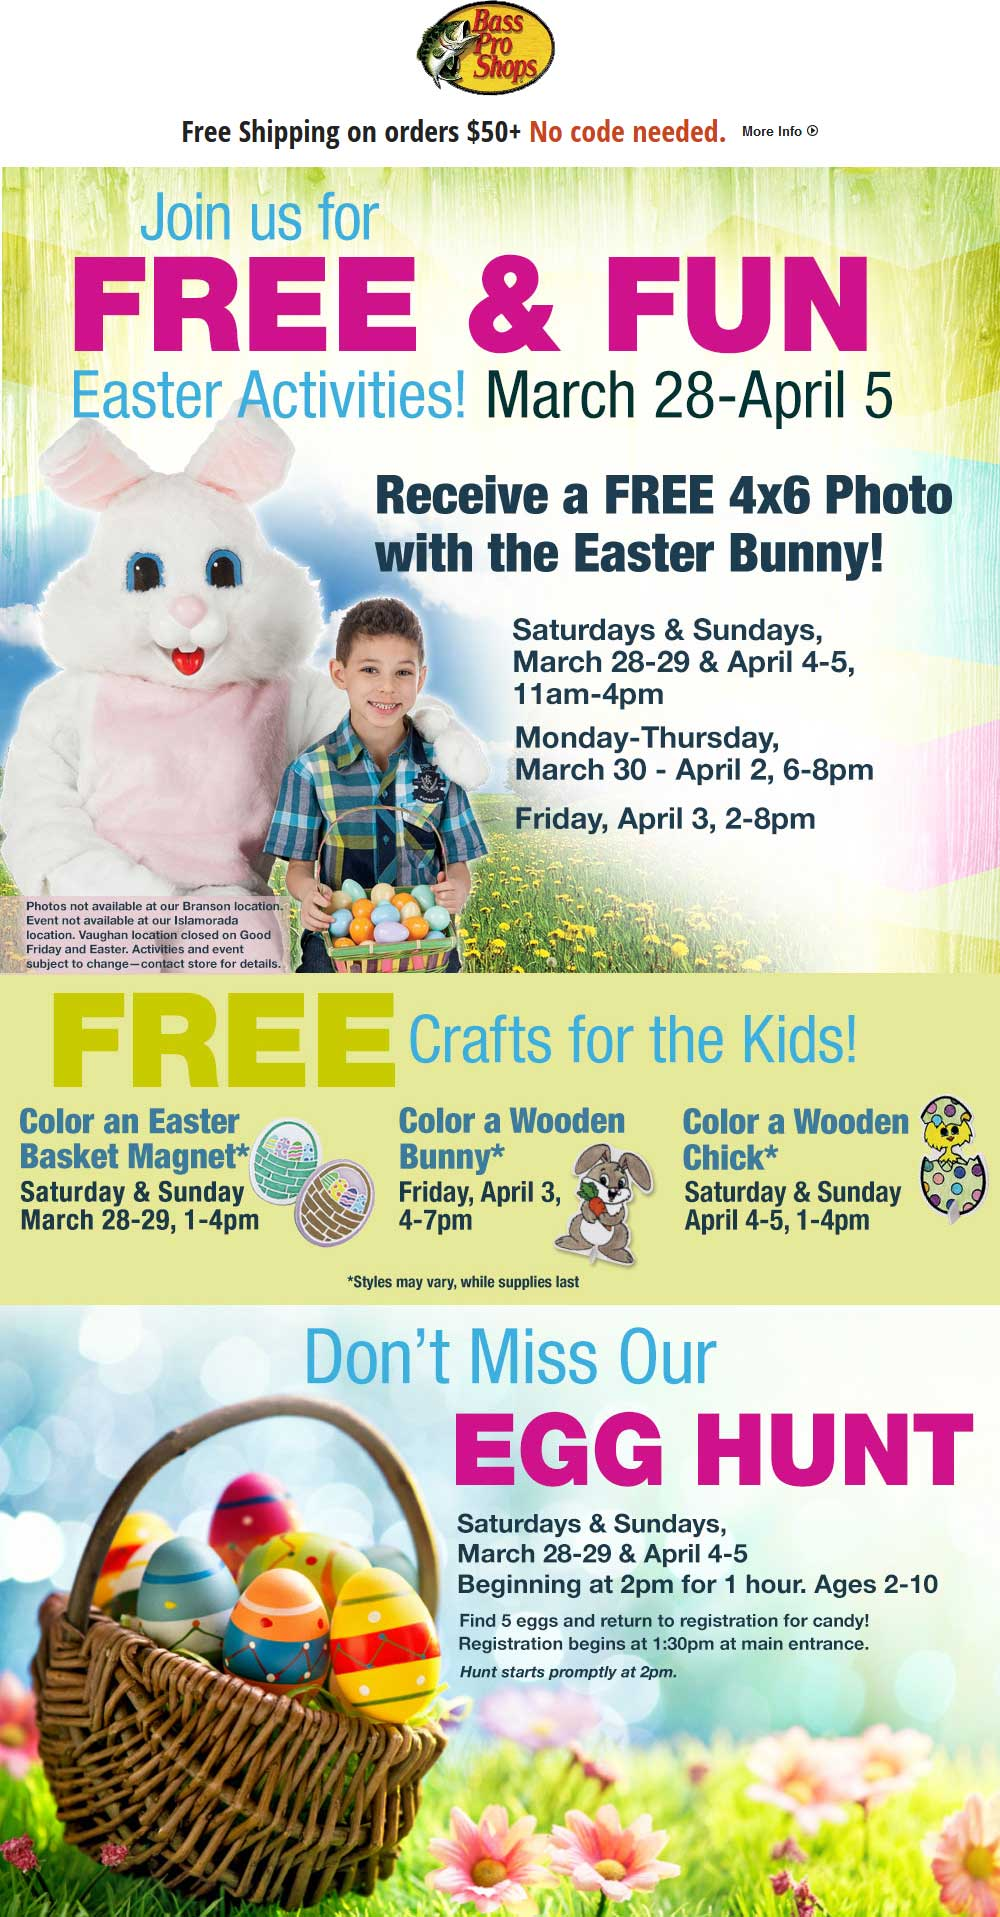 Bass Pro Shops Coupon April 2017 Free photo with Easter bunny, crafts & egg hunt at Bass Pro Shops